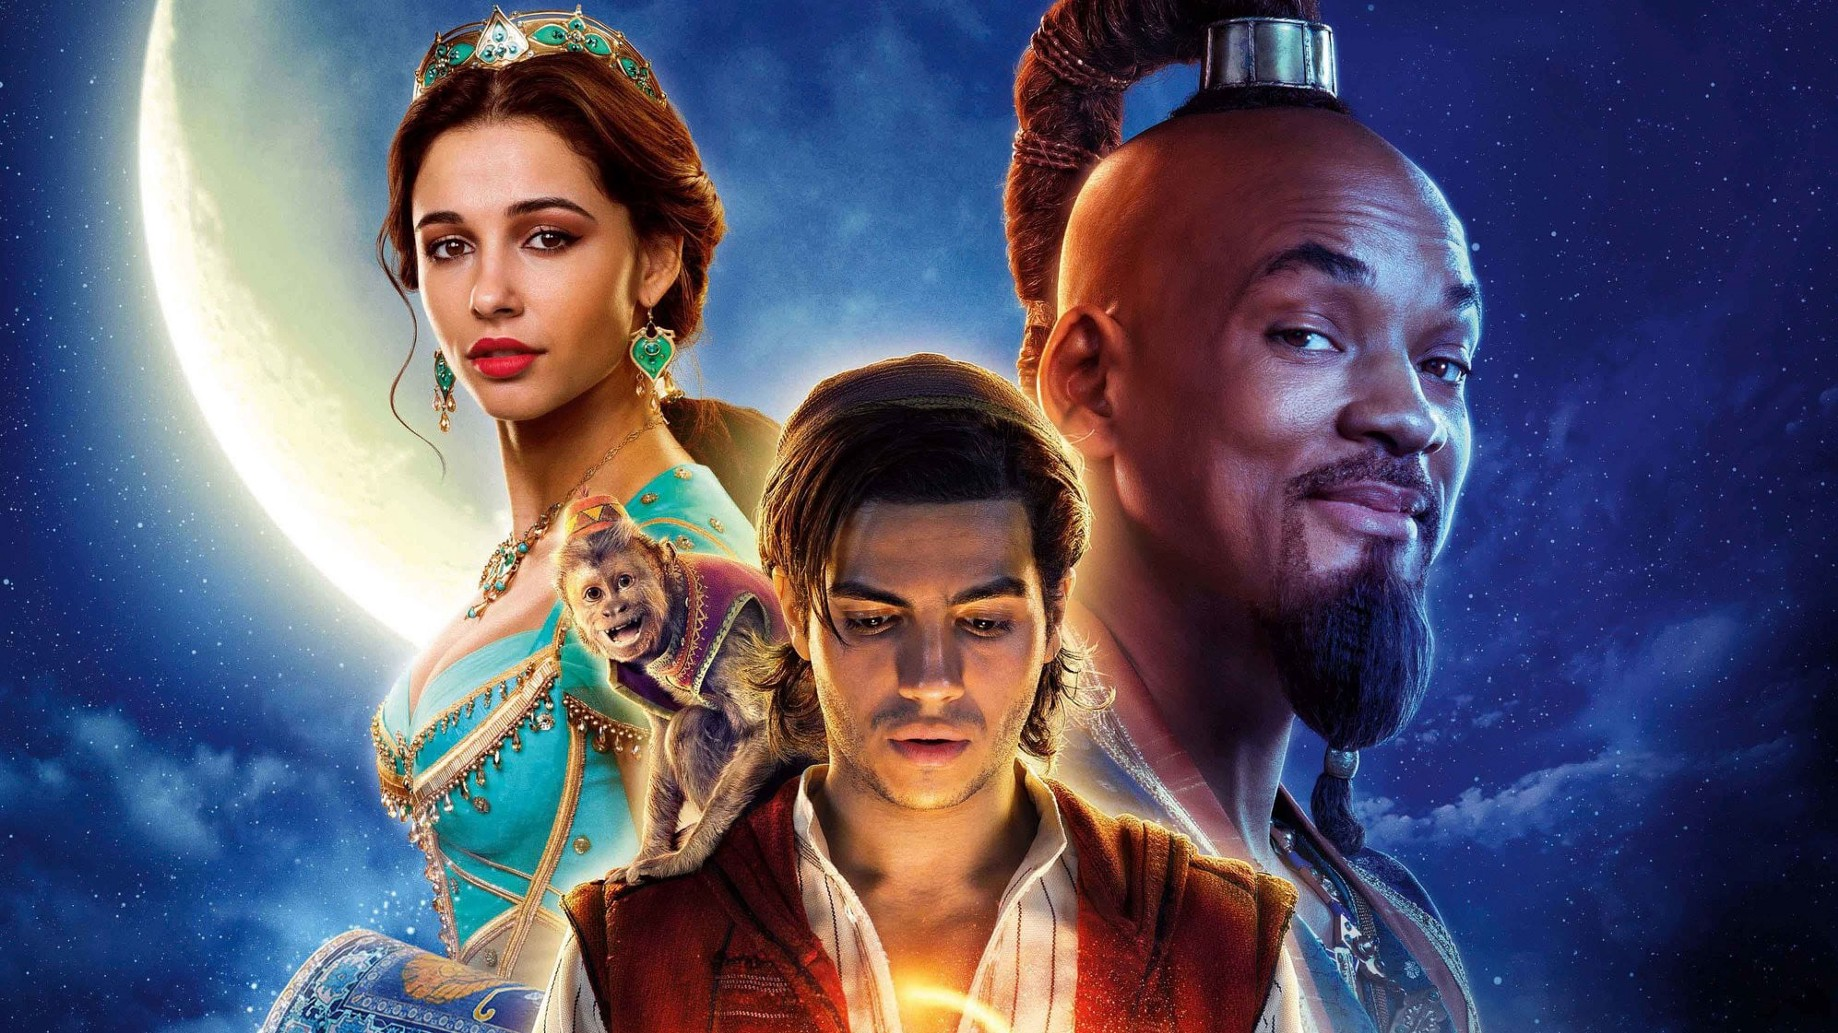 Aladdin (2019) Google Drive ++18 Download Movie HD - Evajuhro buy